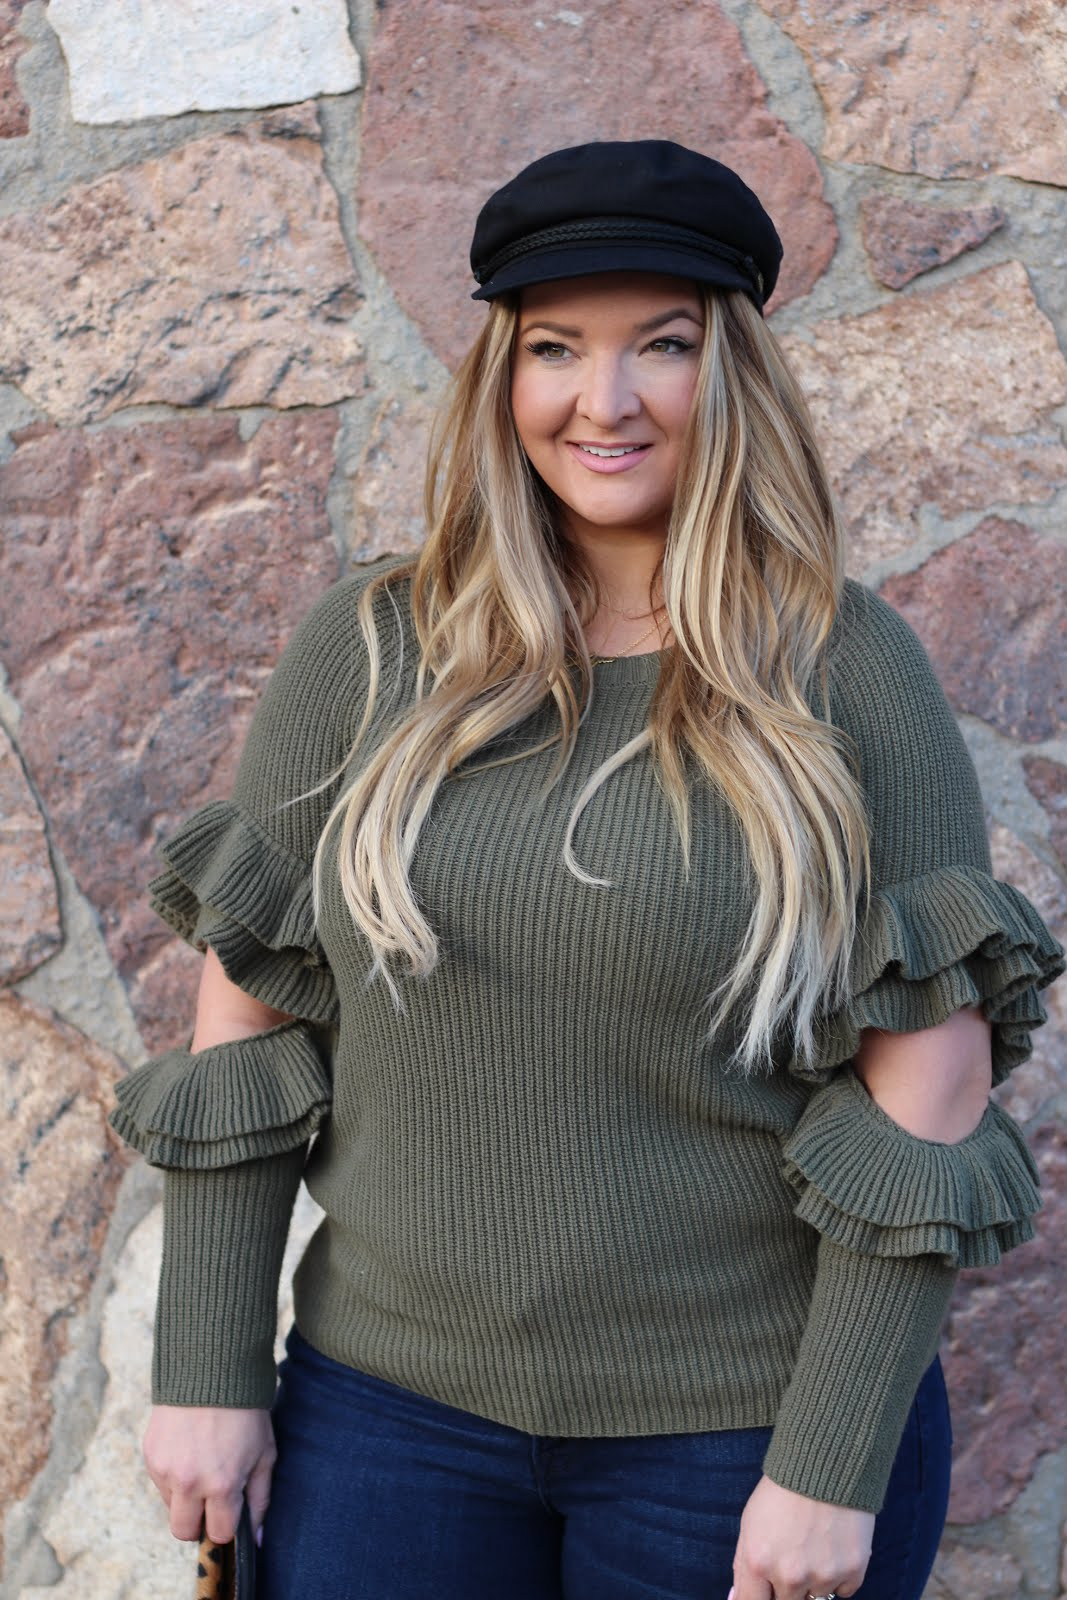 Green & Black Captain hat by popular Denver fashion blogger Delayna Denaye